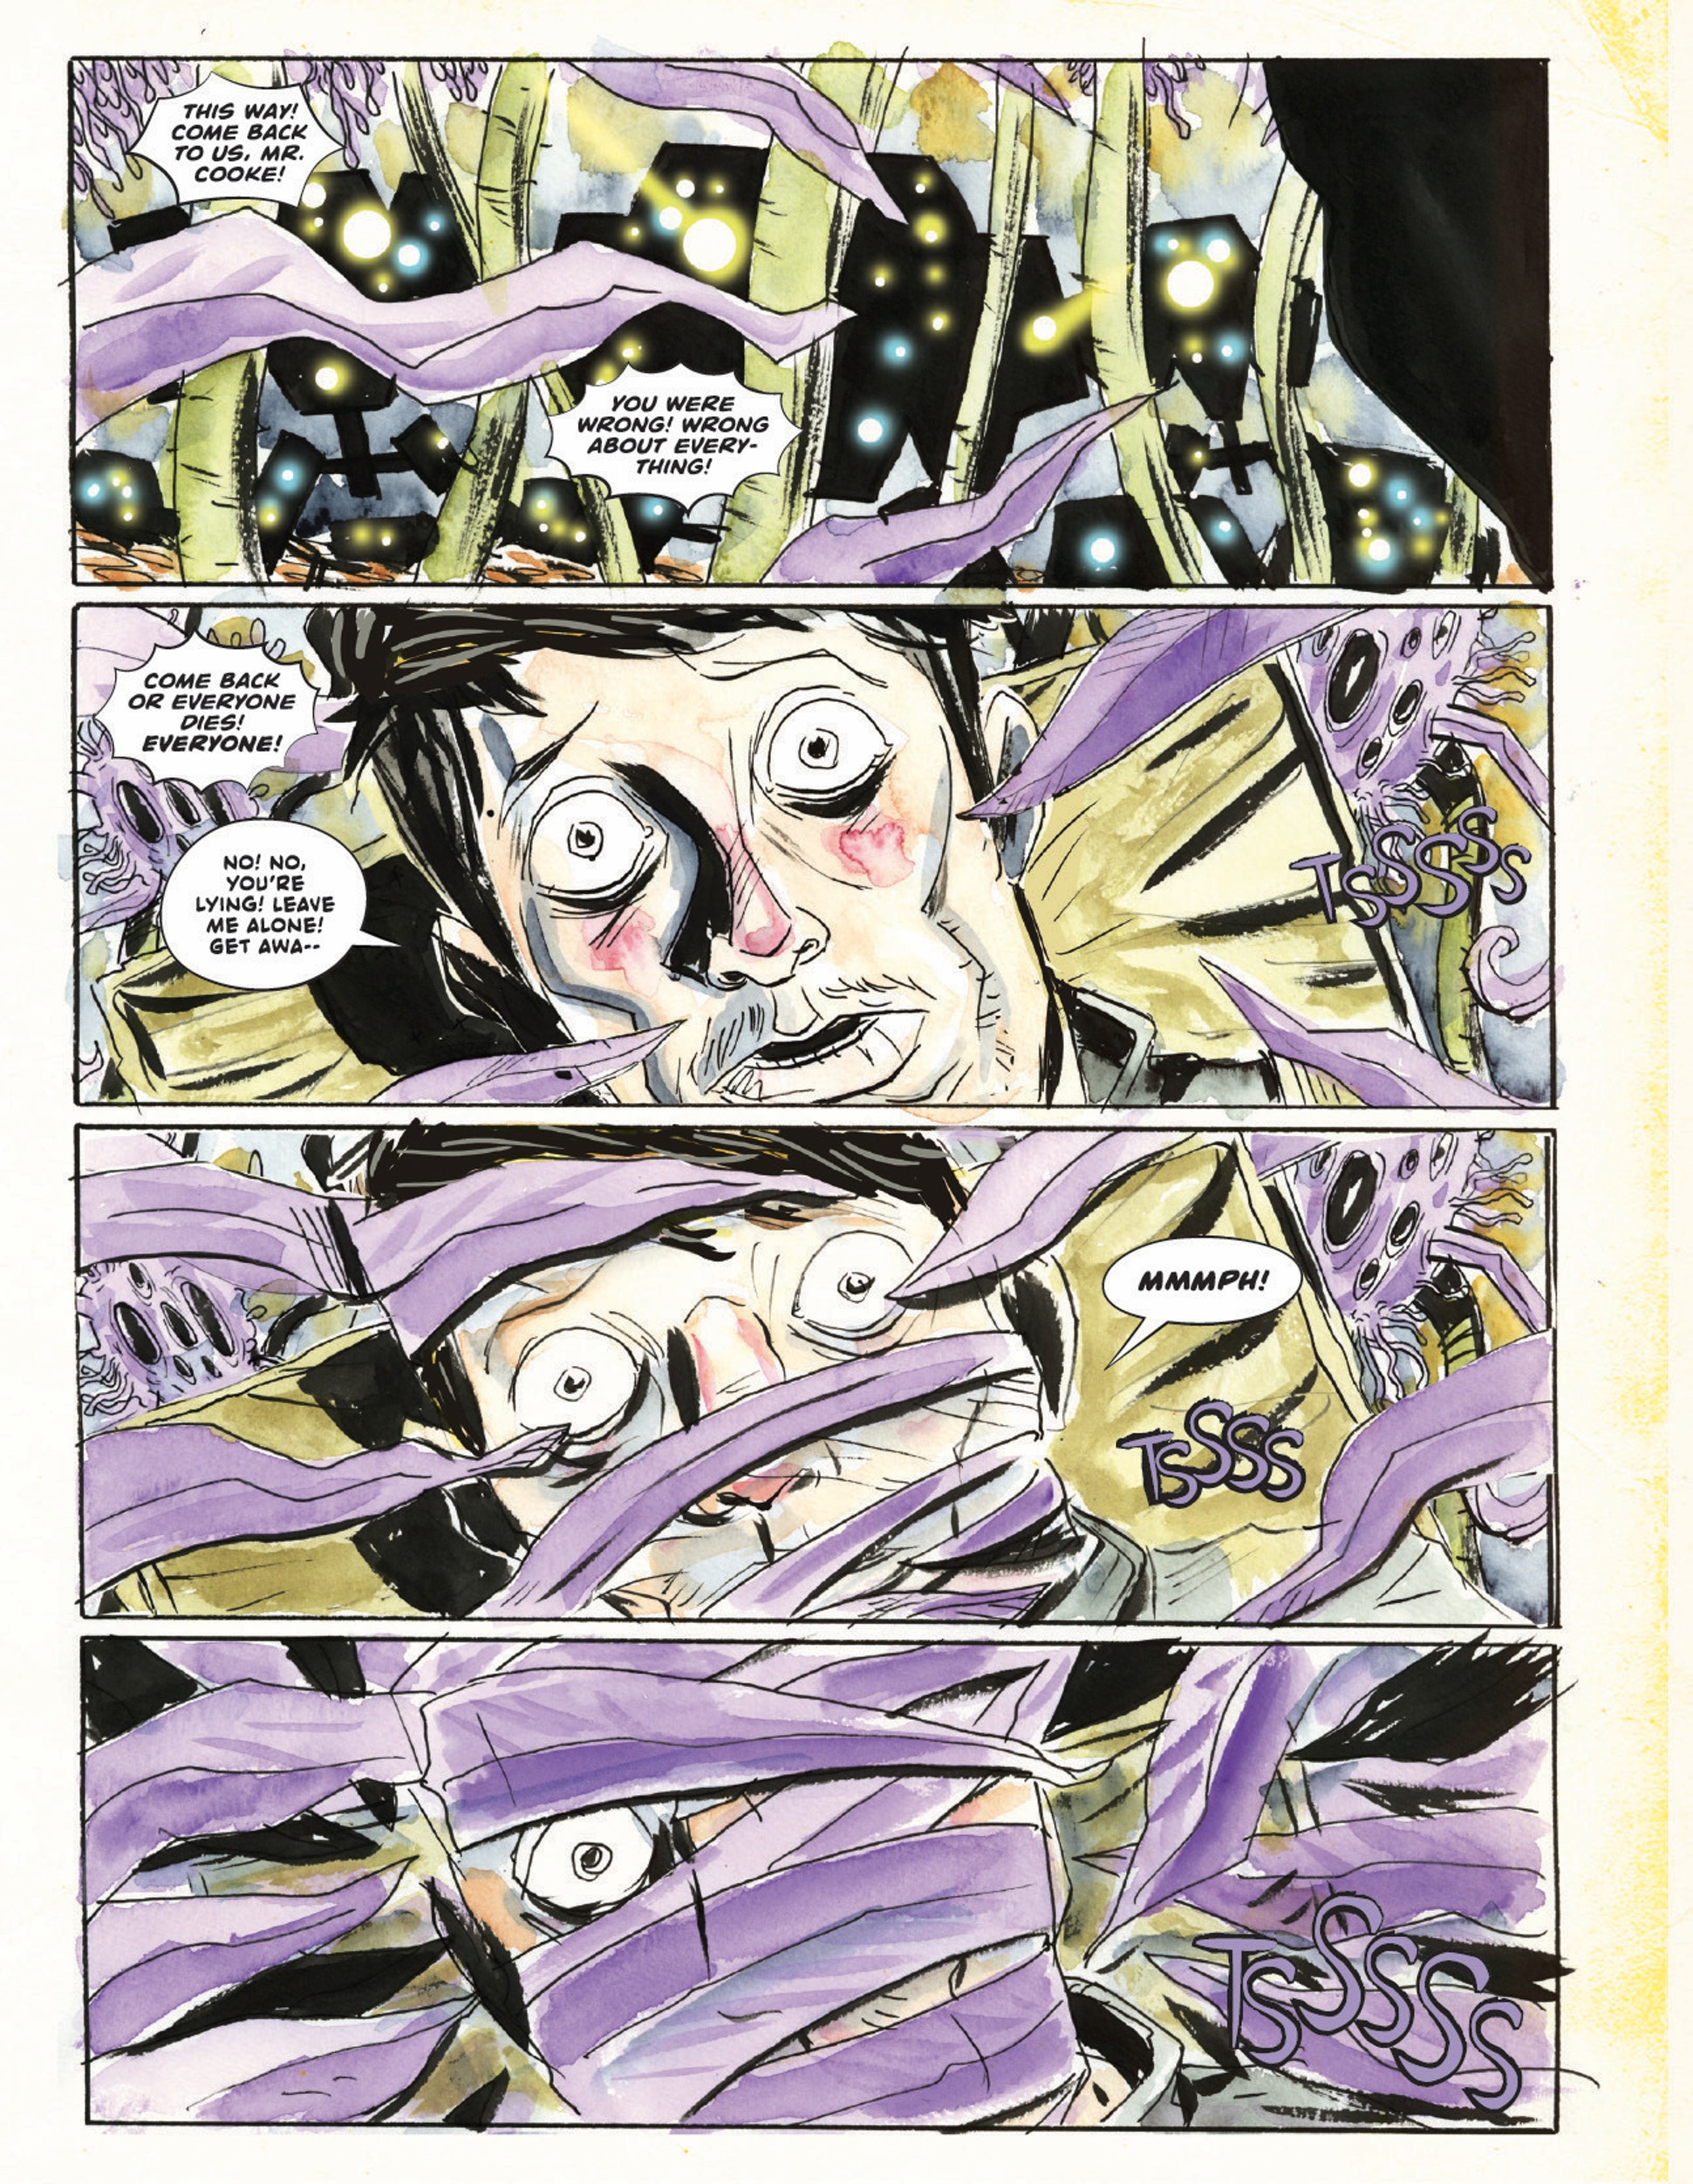 Scene from A.D. After Death from Image Comics, Scott Snyder, Jeff Lemire